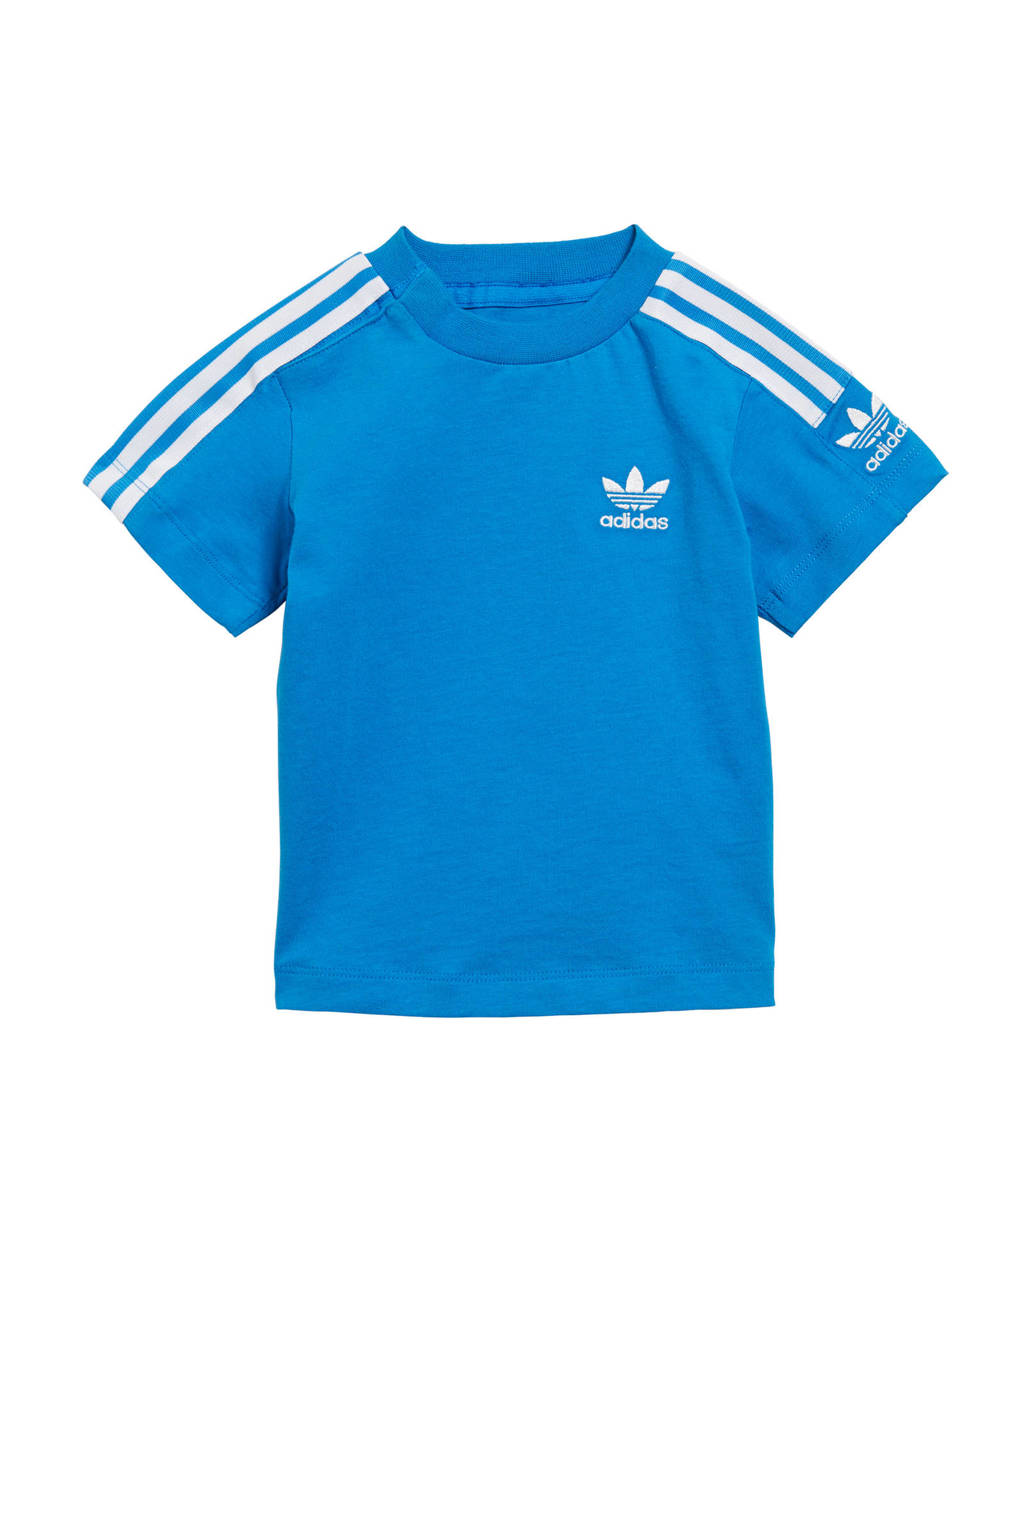 adidas originals T-shirt blauw, Blauw/wit